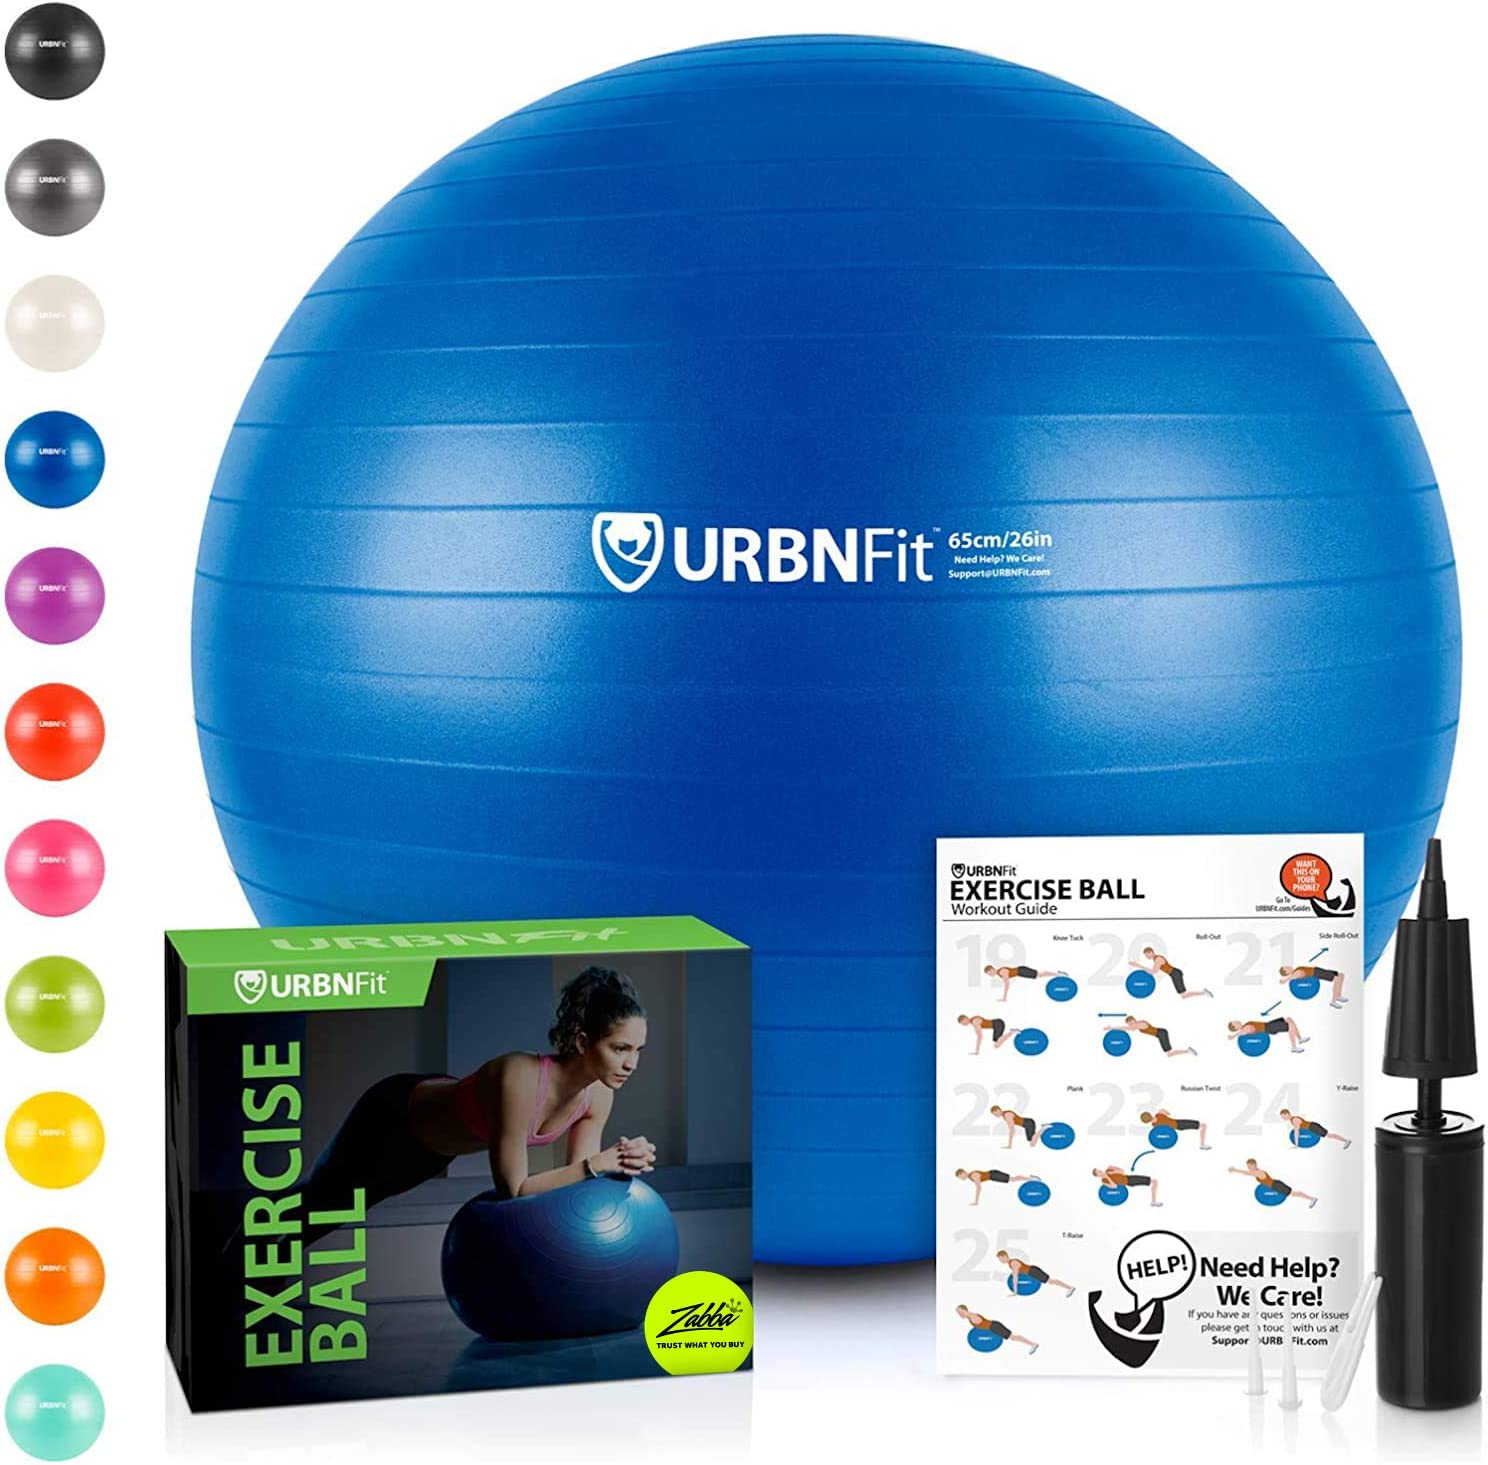 URBNFit Exercise Ball (Multiple Sizes) for Fitness, Stability, Balance & Yoga Ball - Workout Guide & Quick Pump Included - Anti Burst Professional Quality Design: Sports & Outdoors